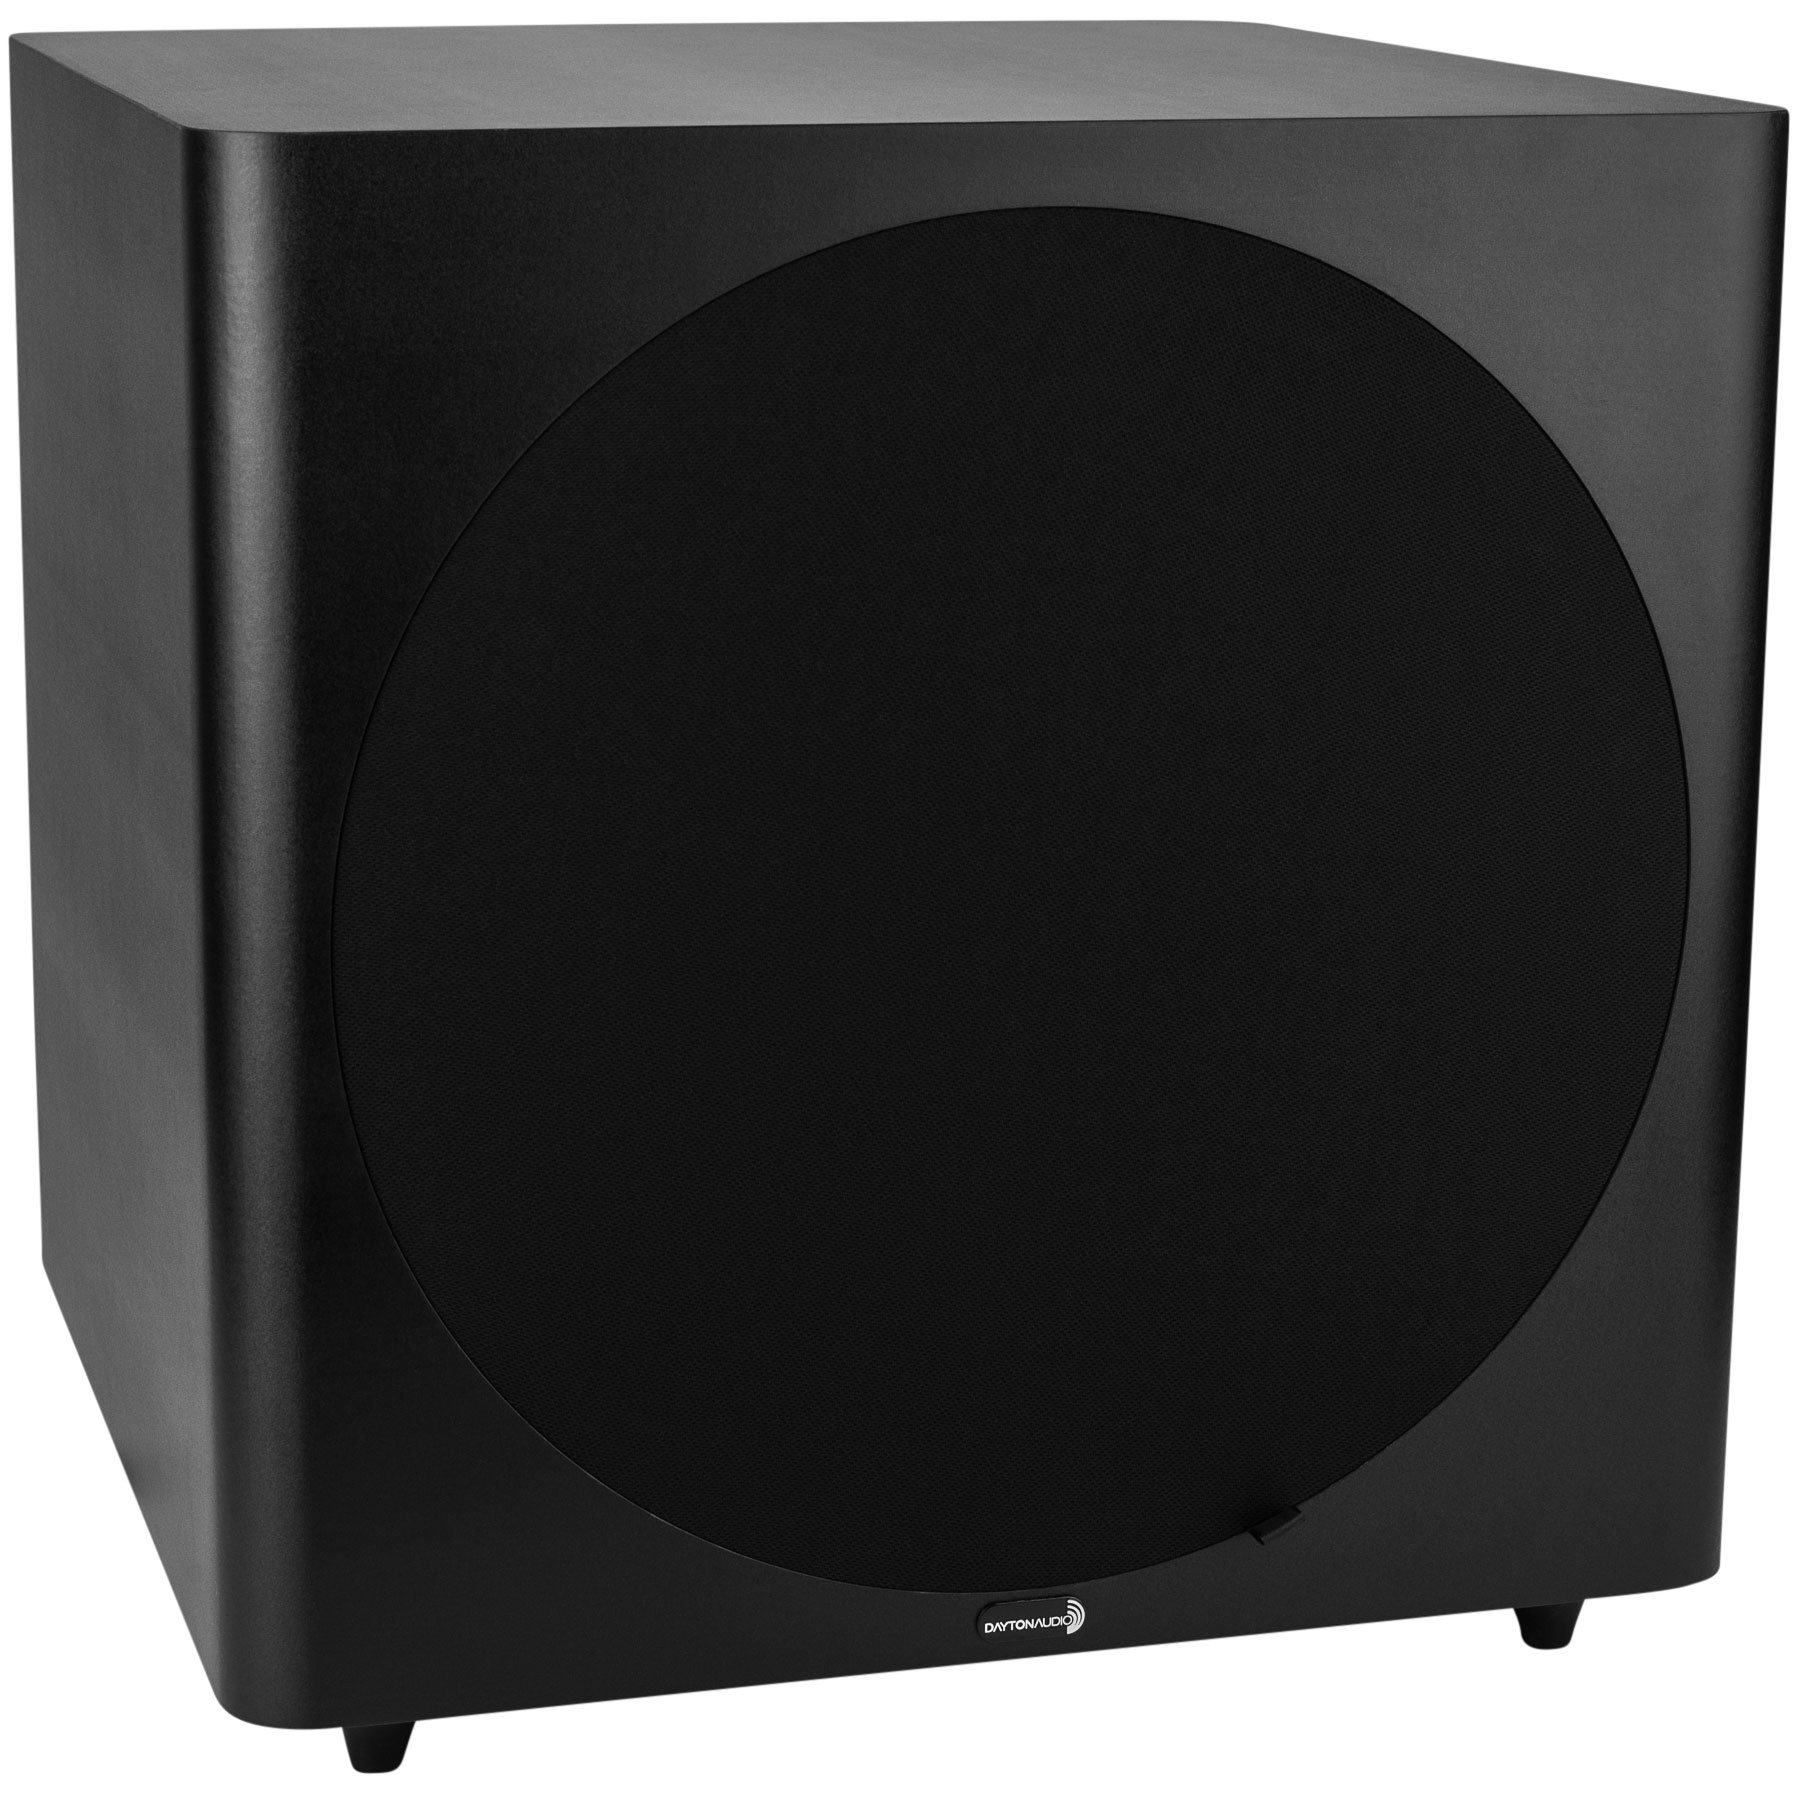 Dayton Audio SUB-1500 15'' 150 Watt Powered Subwoofer